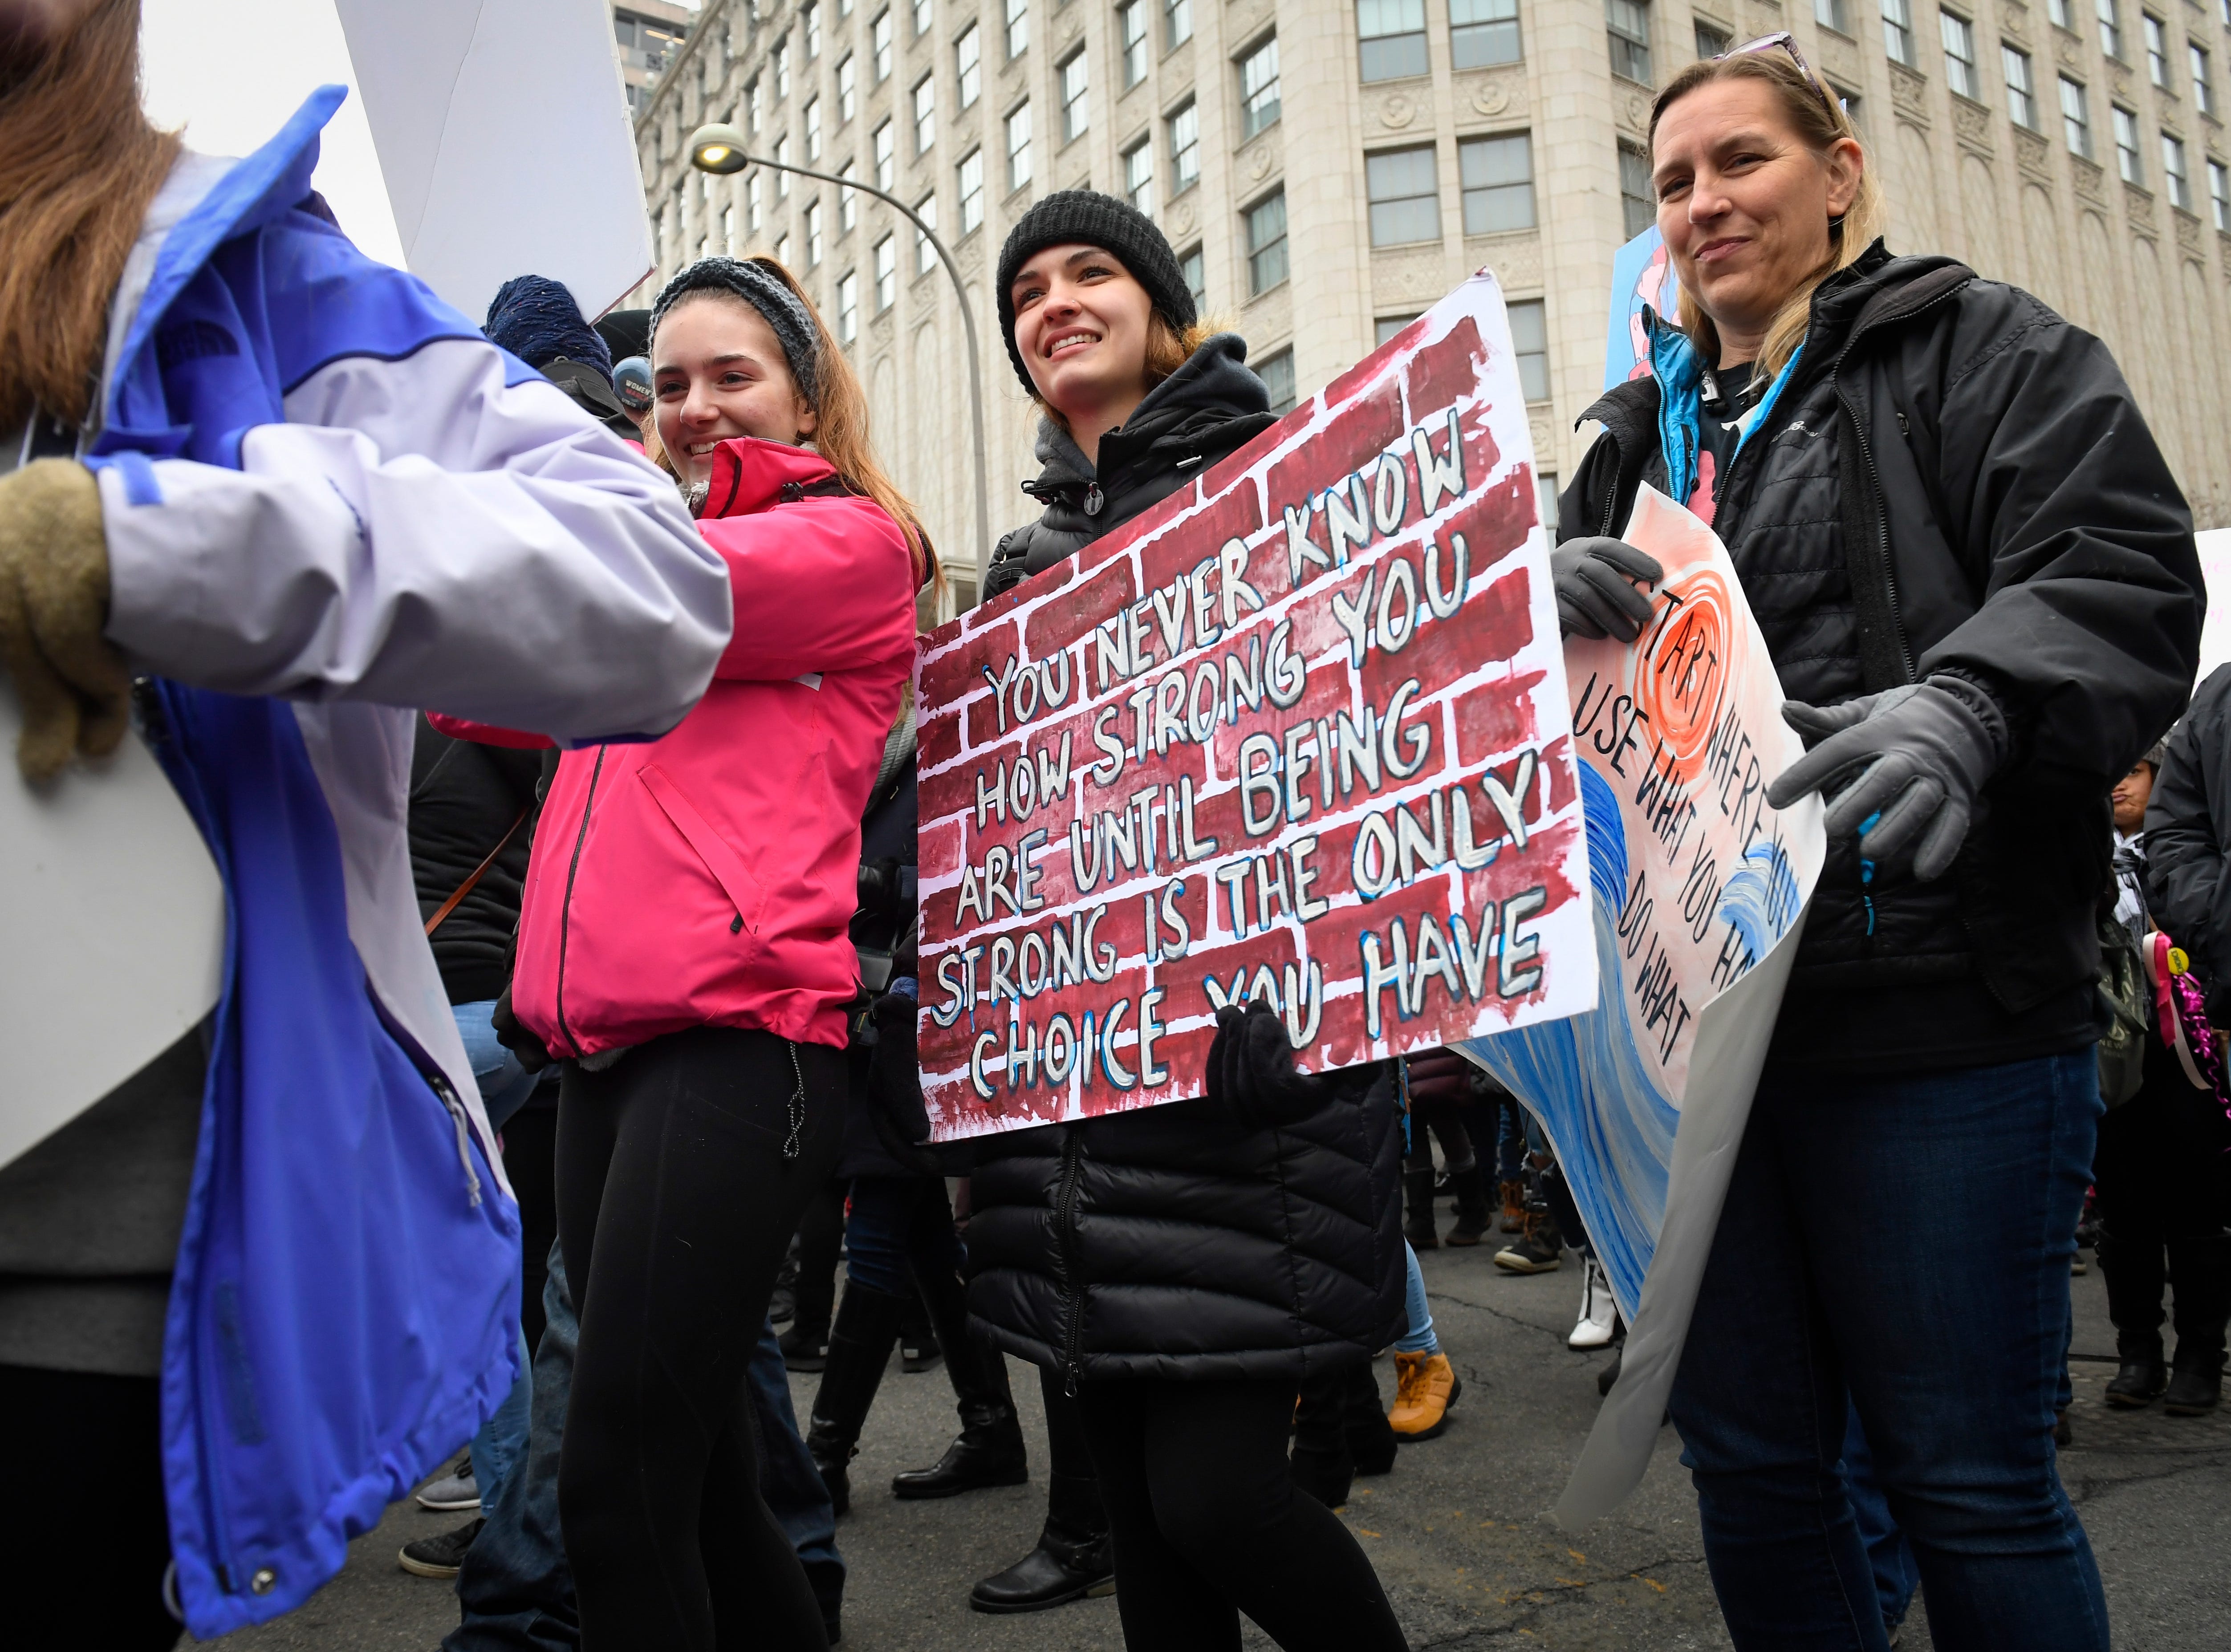 Without the motivation of TrumpÕs election or the midterms,  the marches this year face such obstacles as travel inconveniences from the federal shutdown as well as harsh weather Saturday from the Midwest to New England.